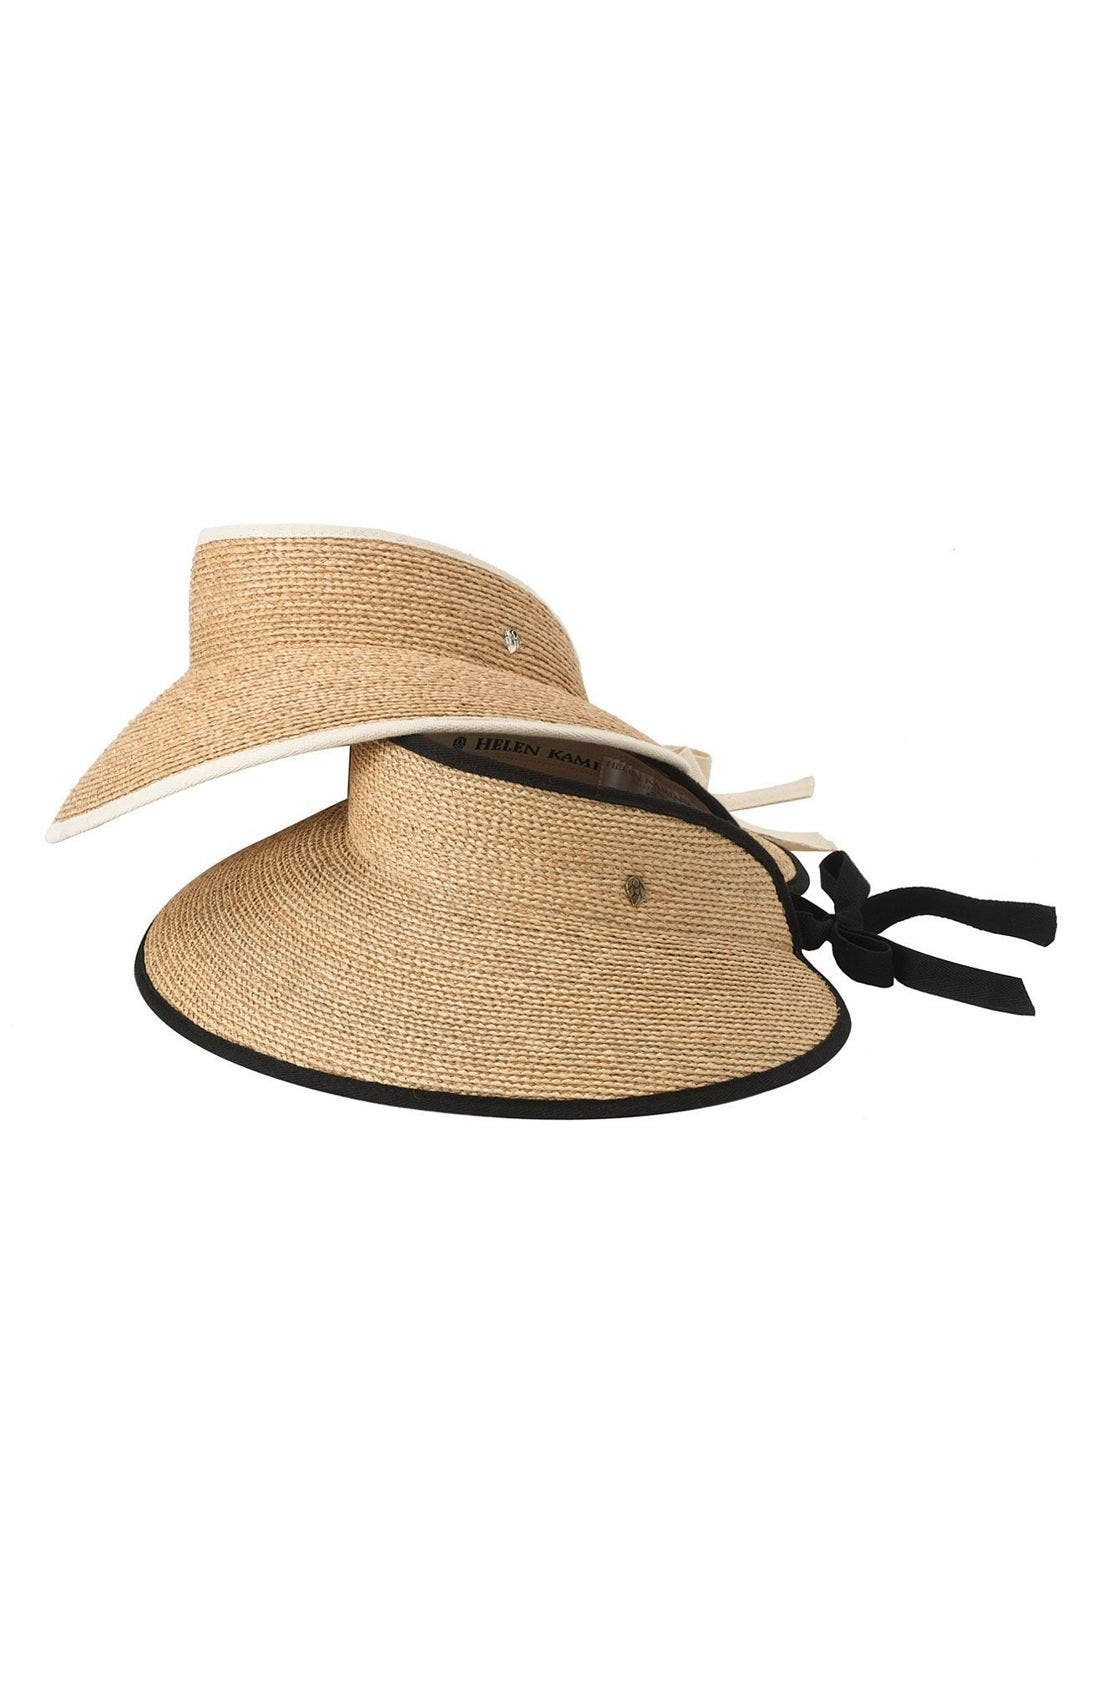 HELEN KAMINSKI, 'Mita' Packable Raffia Visor, Alternate thumbnail 2, color, NATURAL/ MIDNIGHT